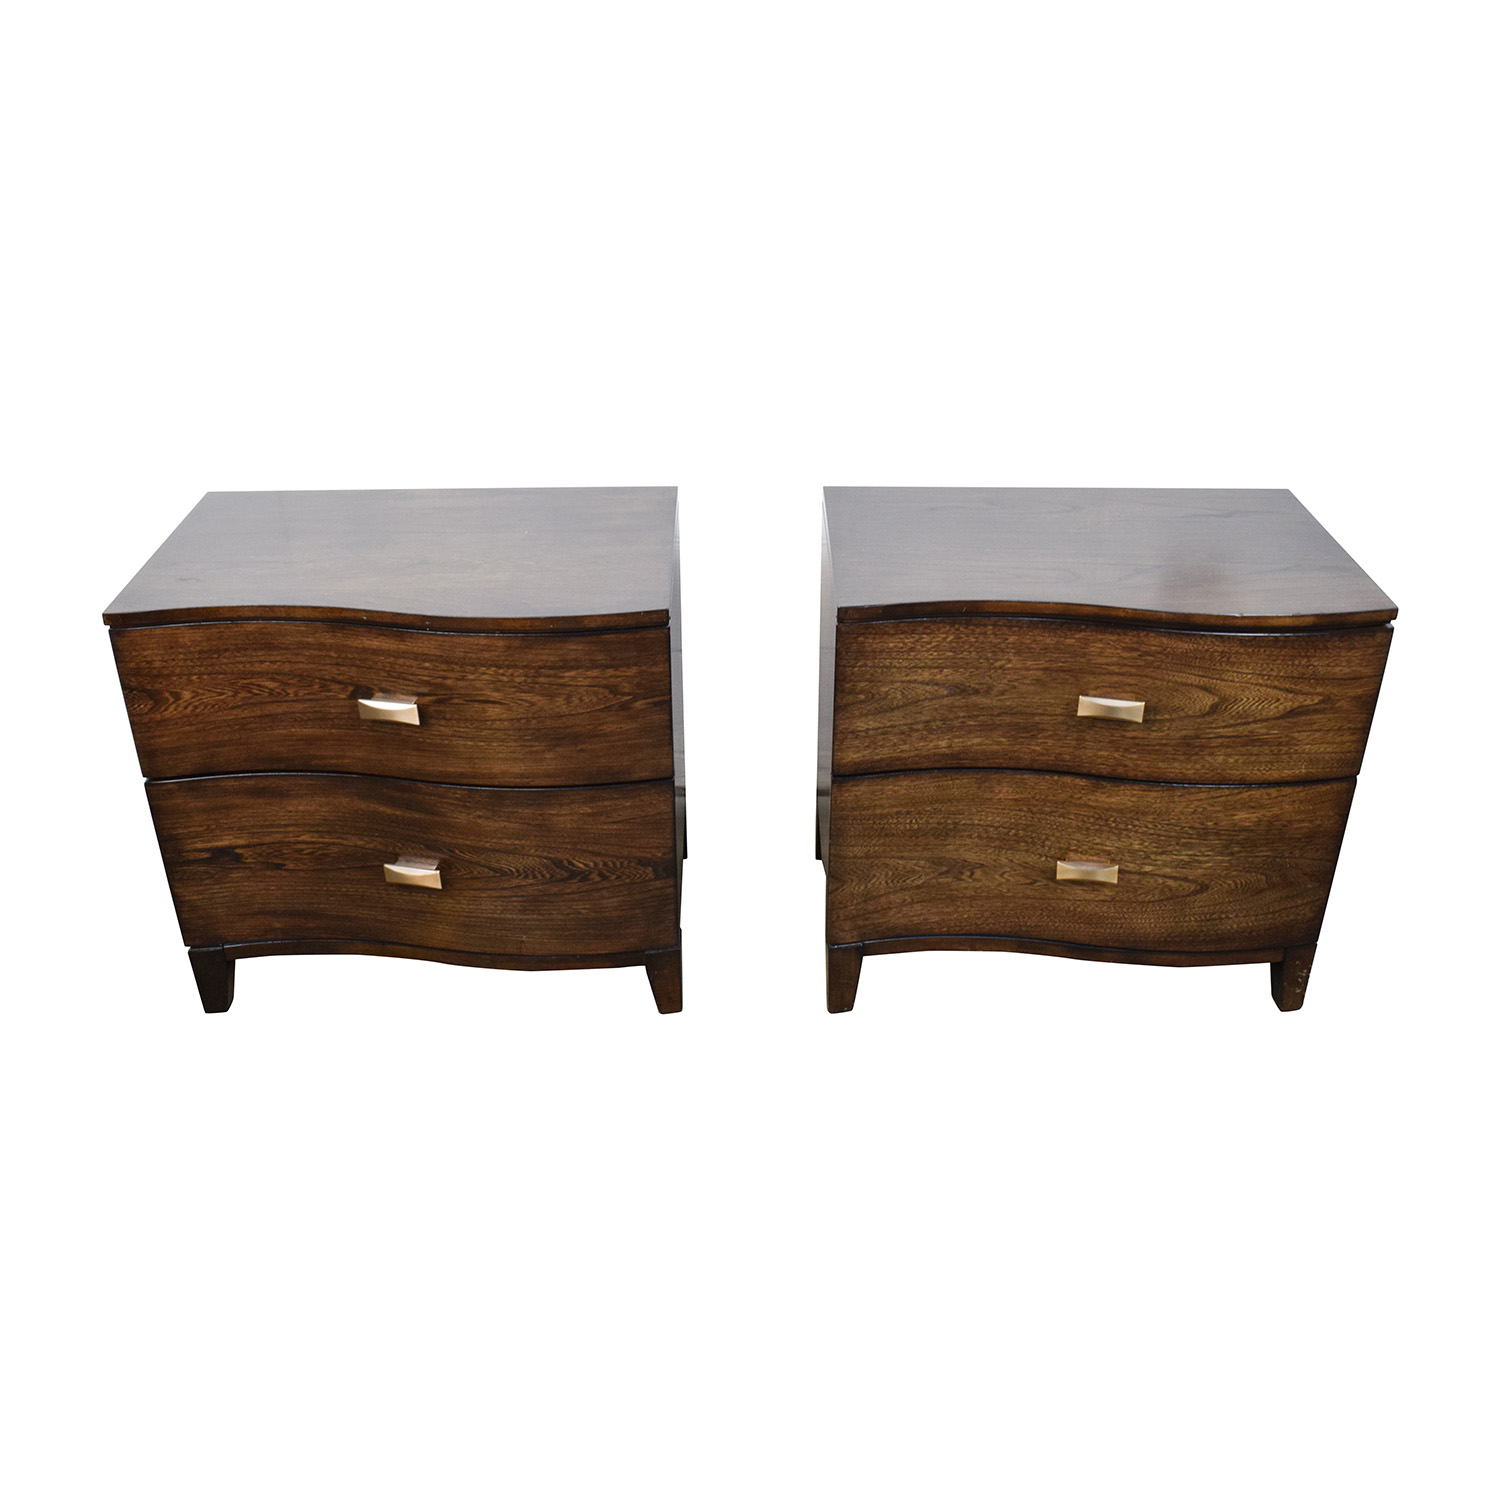 Raymour and Flanigan Raymour & Flanigan Curved Wood Nightstand used